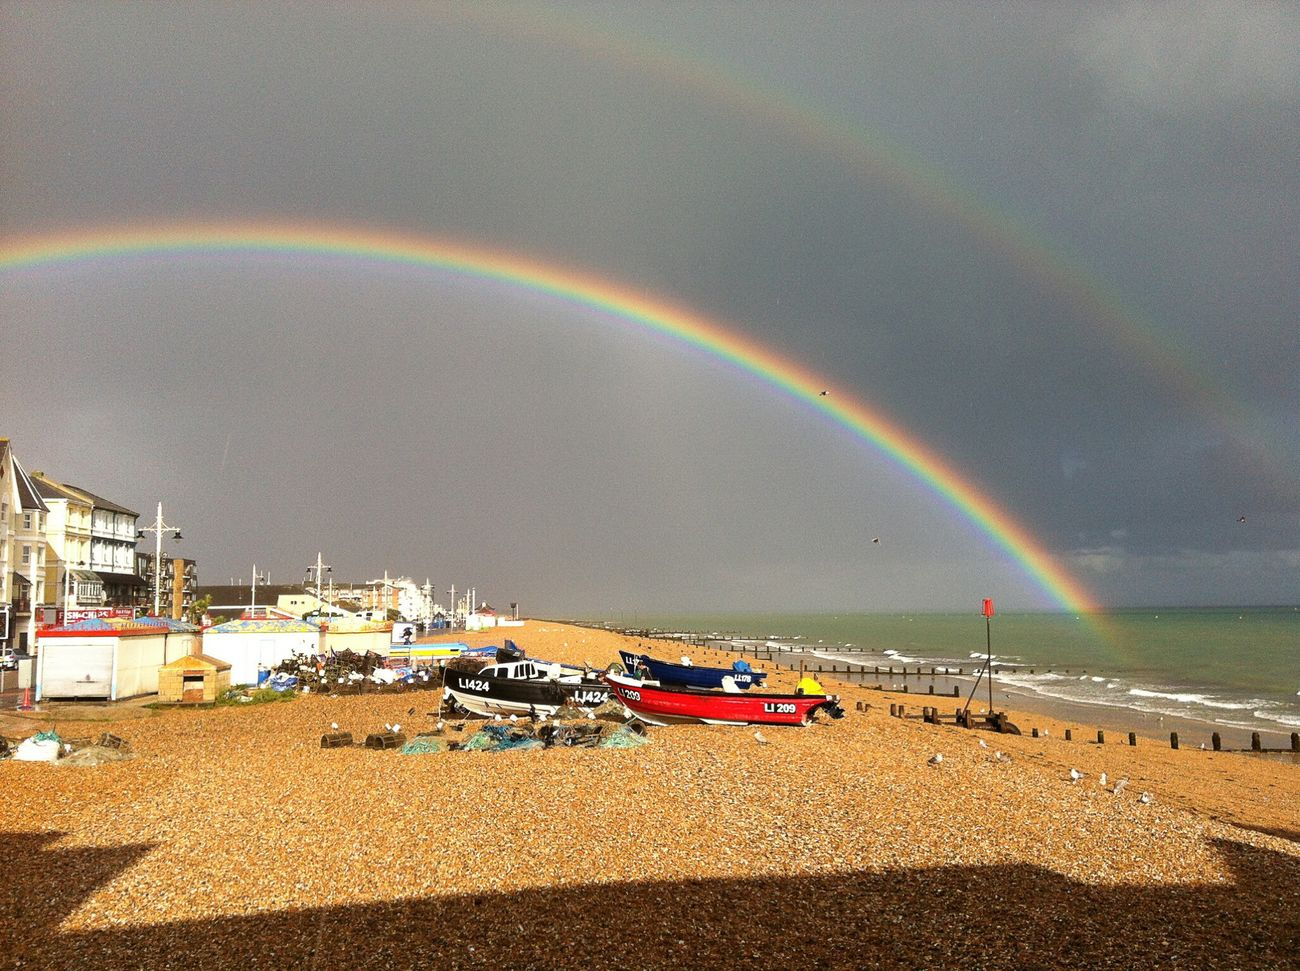 Behind the last photograph was a Rain Bow Worthing Sea And Sky